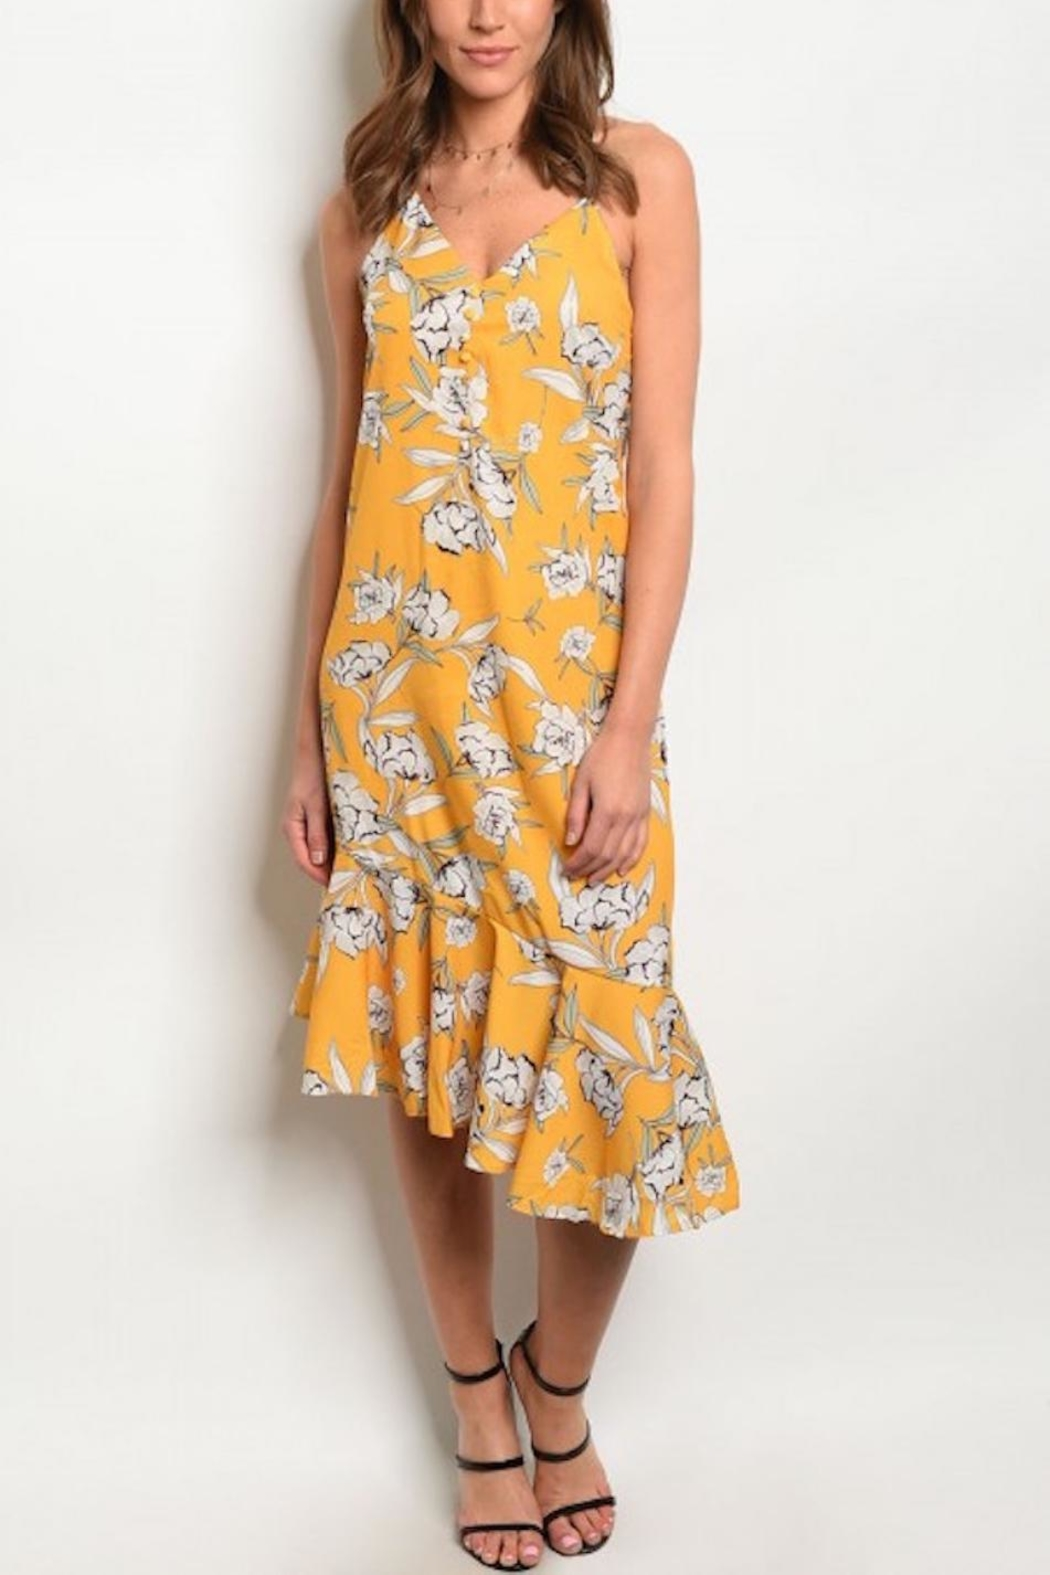 fe46386c897 House of Atelier Yellow Floral Sundress from Montclair by Atelier ...